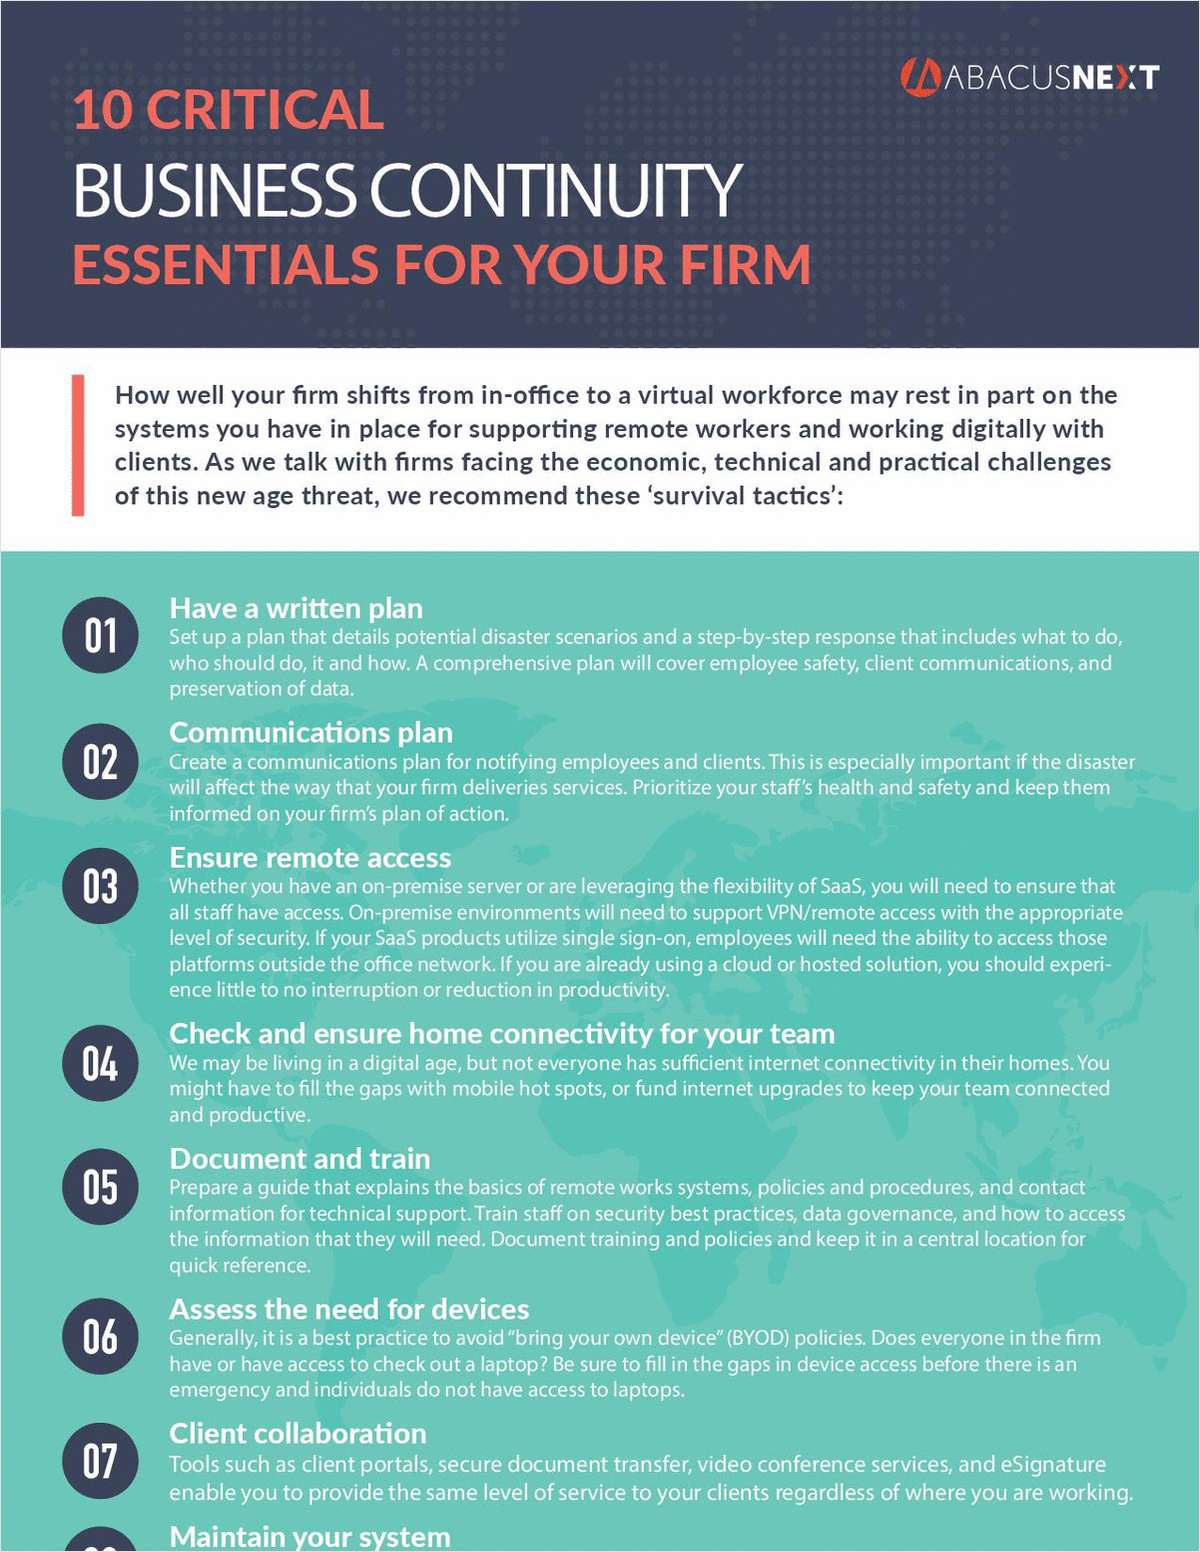 10 Critical Business Continuity Essentials for Your Firm